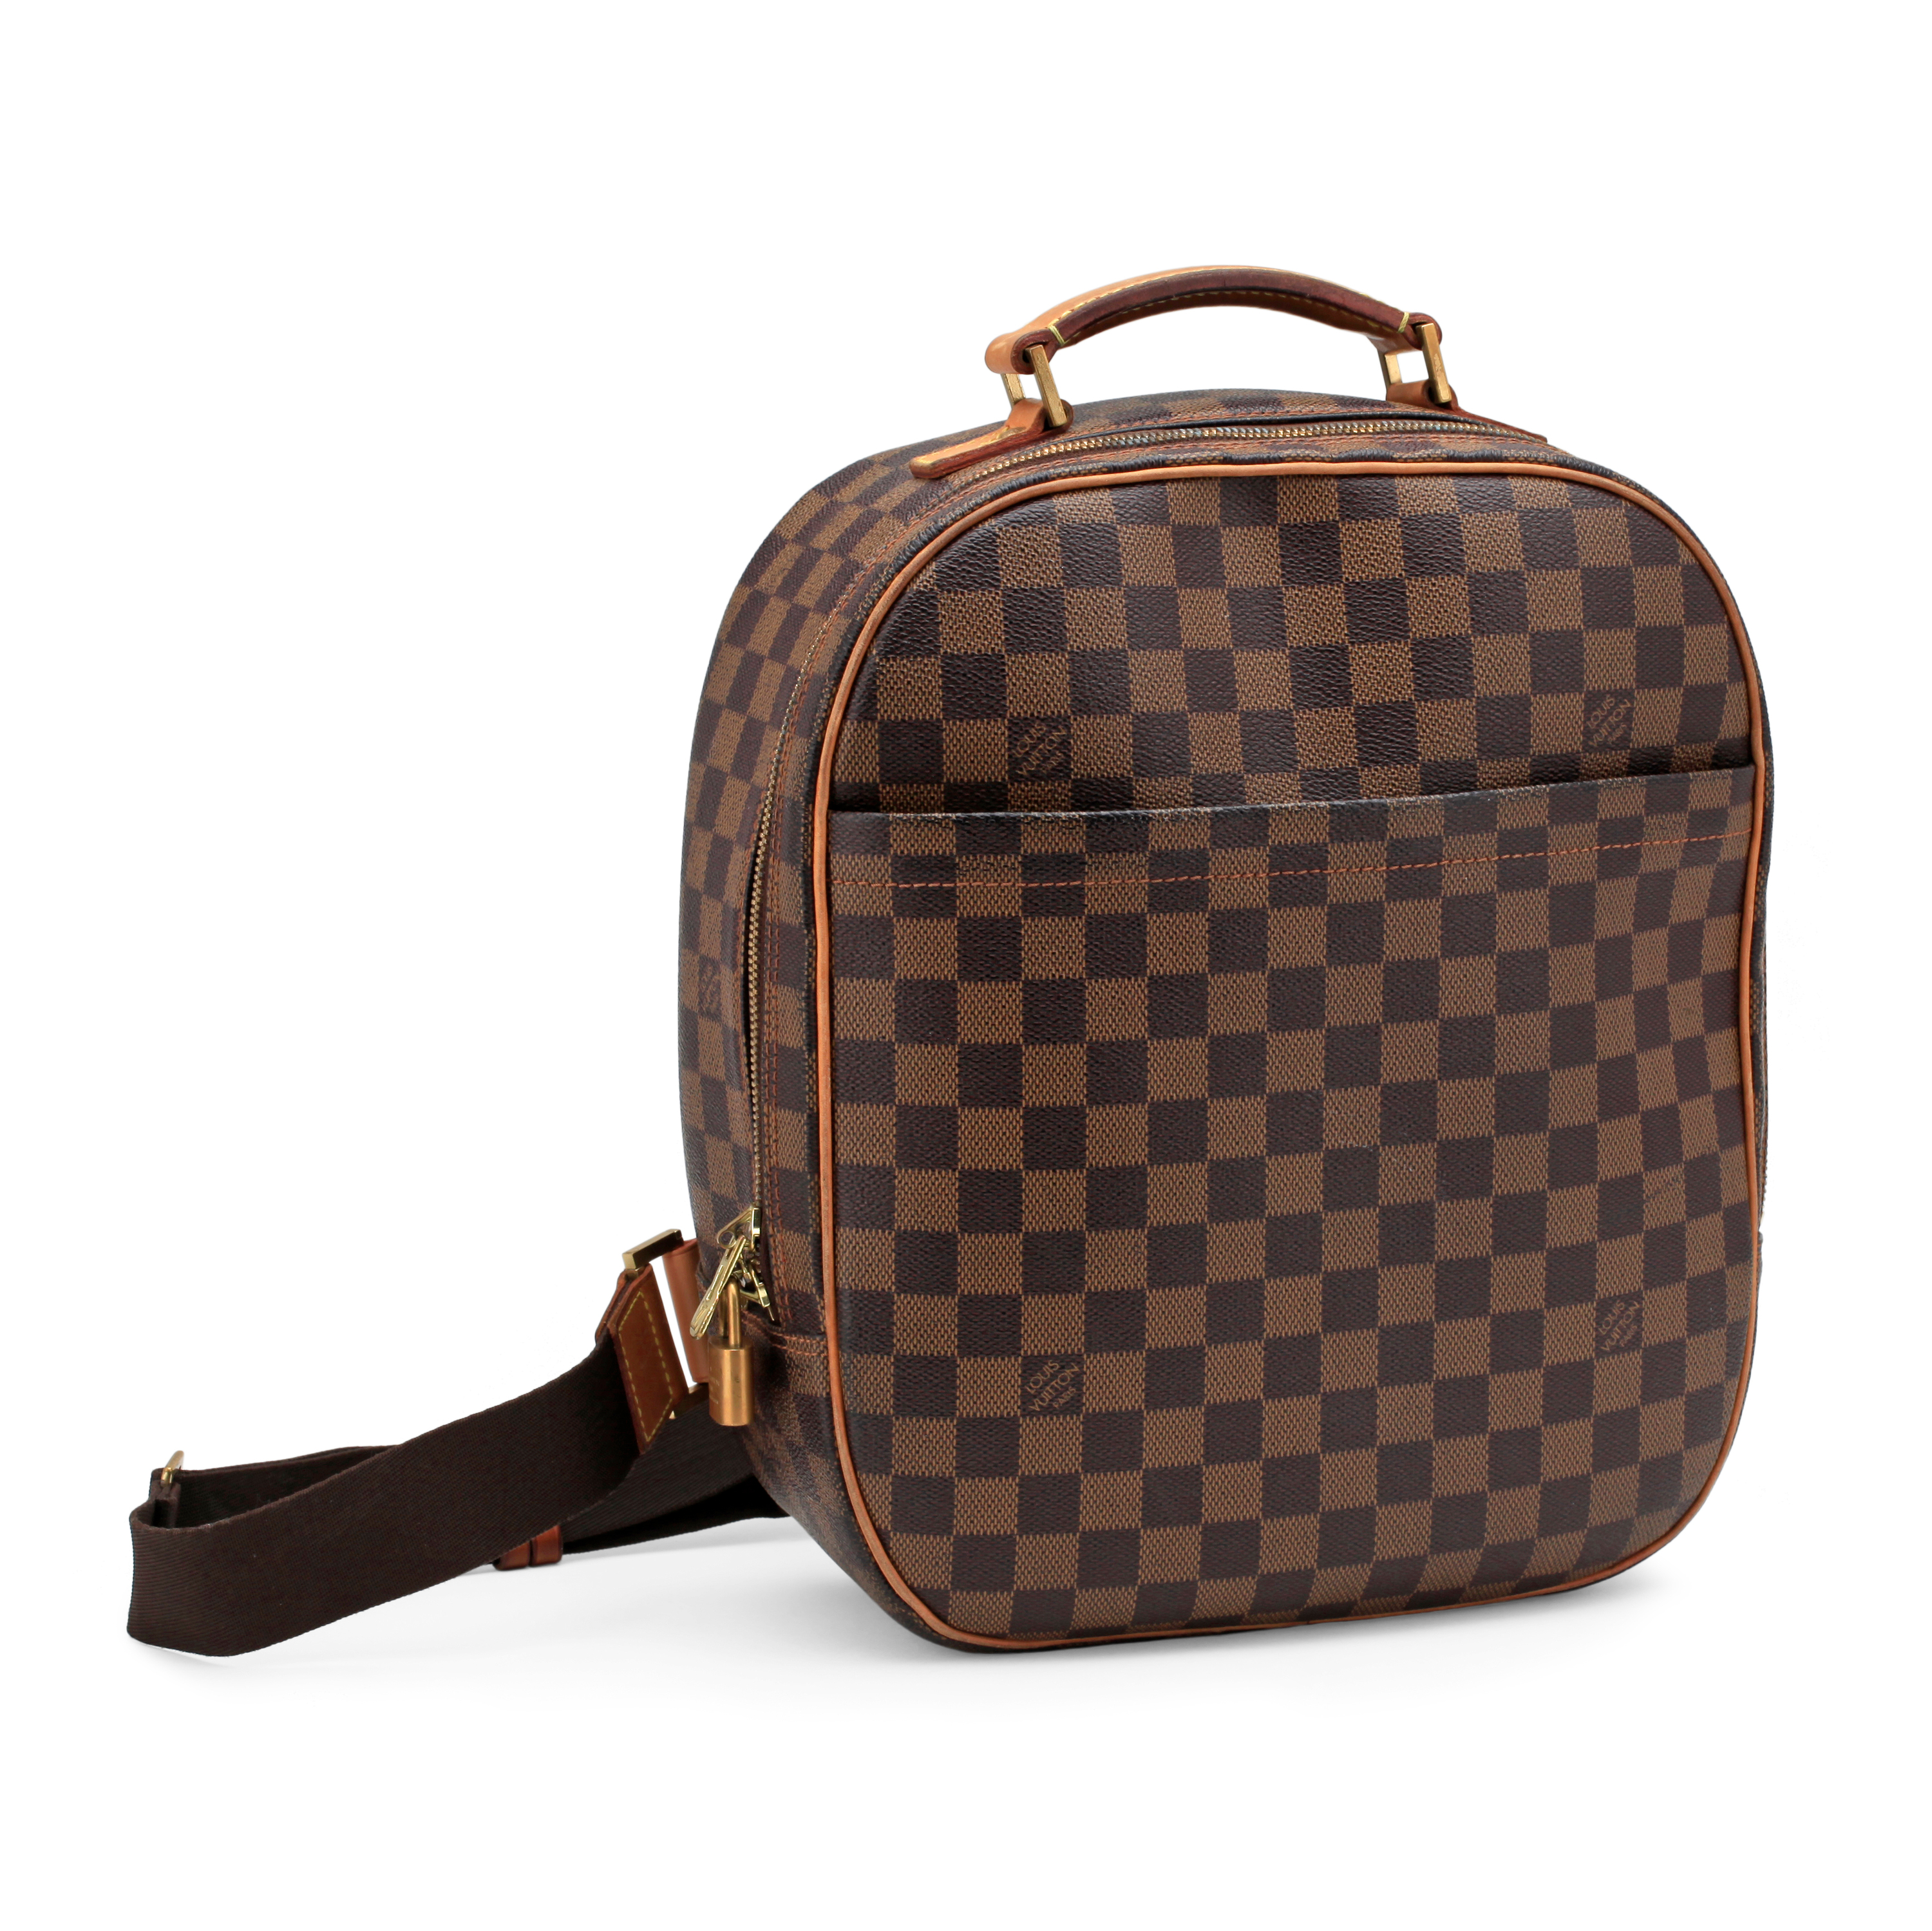 2baf066ca6d5 Auction results for Louis Vuitton Luggage bag